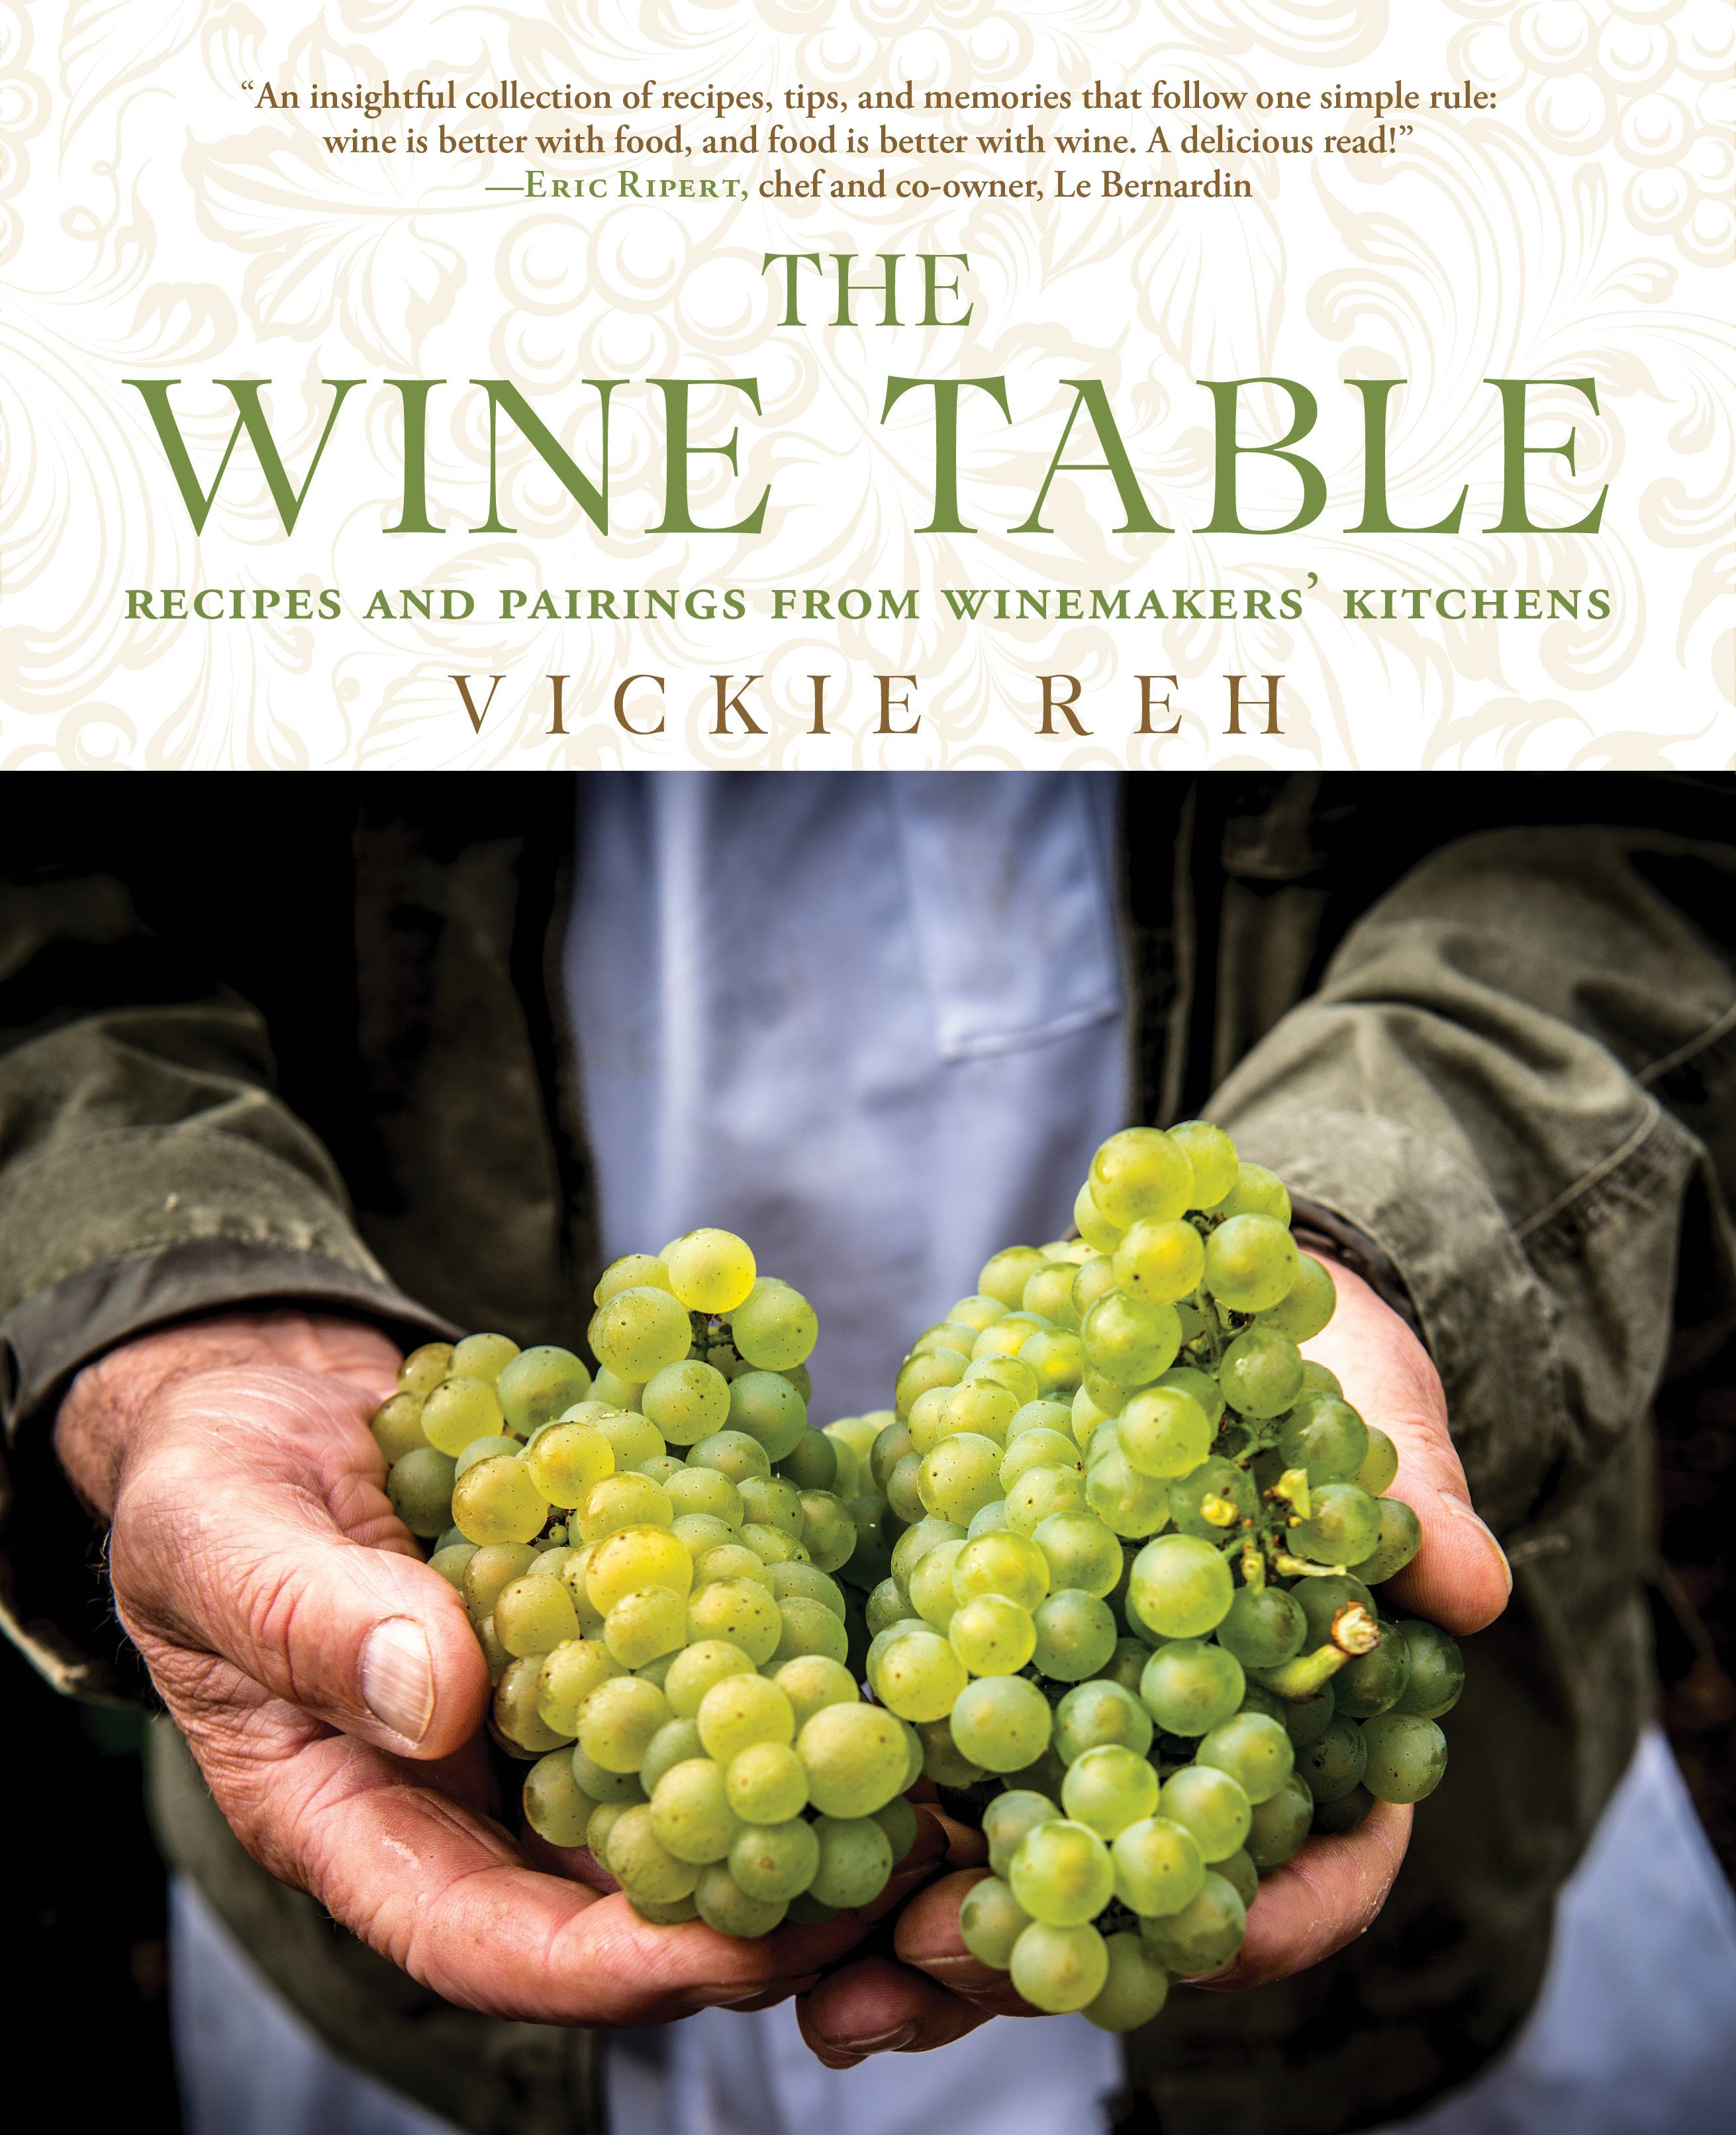 """The Wine Table"" cookbook is an ambitious effort to gather inside intel and connect the dots between Eurocentric regional cuisines and wines."